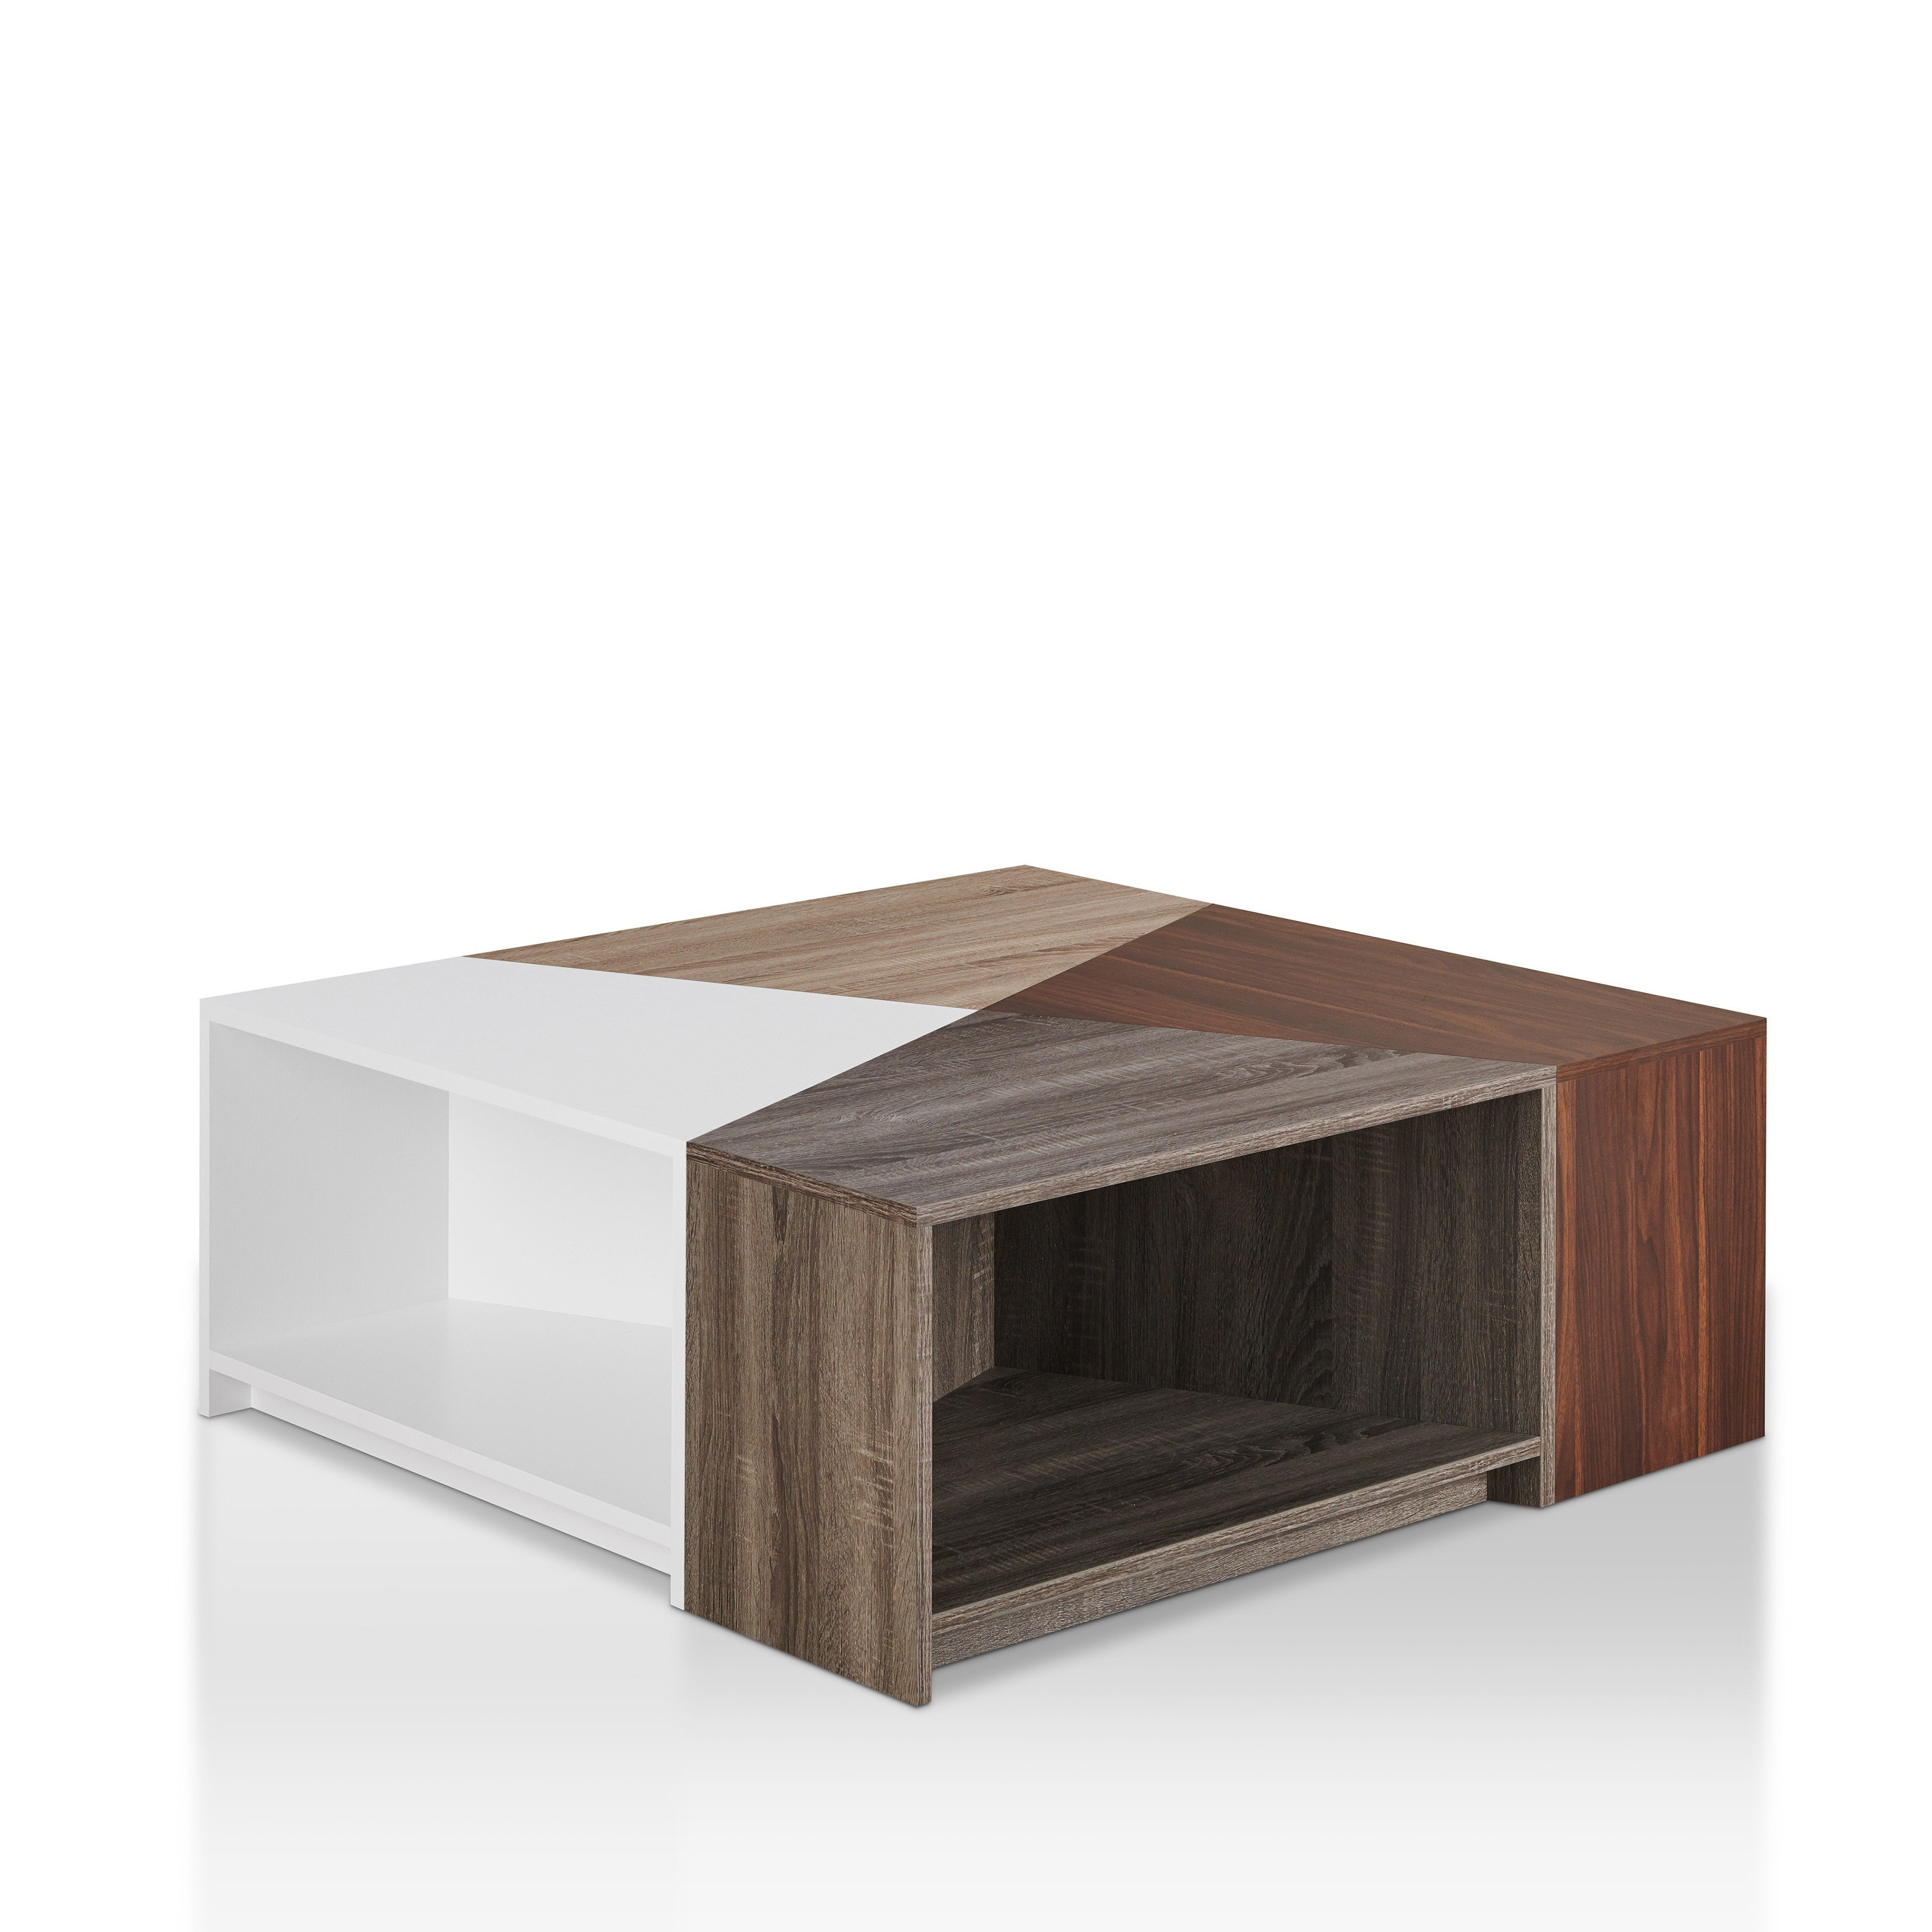 Modular Coffee Tables Within Most Recent Shop Furniture Of America Deron Contemporary Multi Colored Modular (View 11 of 20)